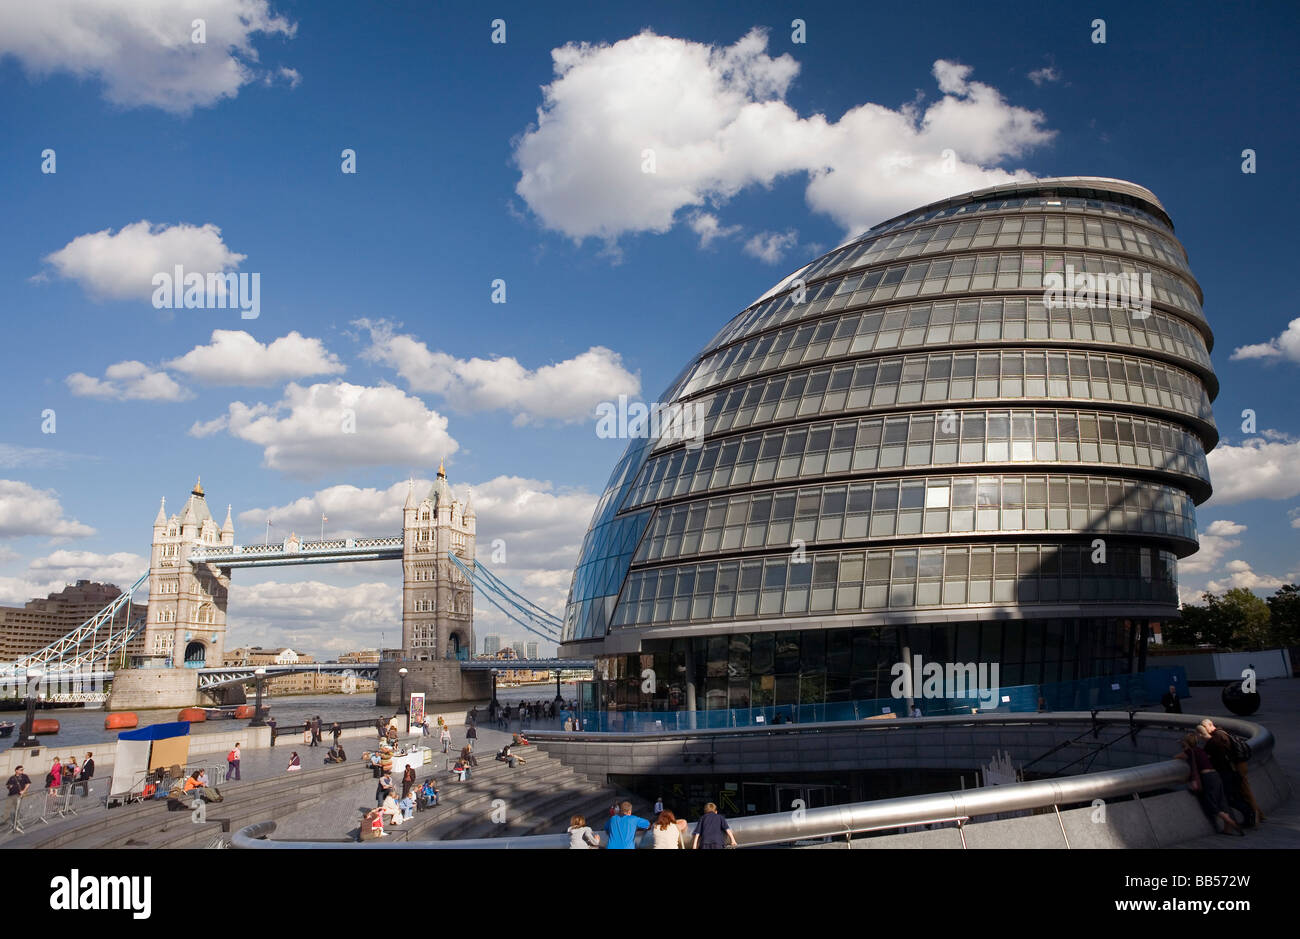 City Hall Greater London Authority Building by Norman Foster with Tower Bridge Southwark London - Stock Image